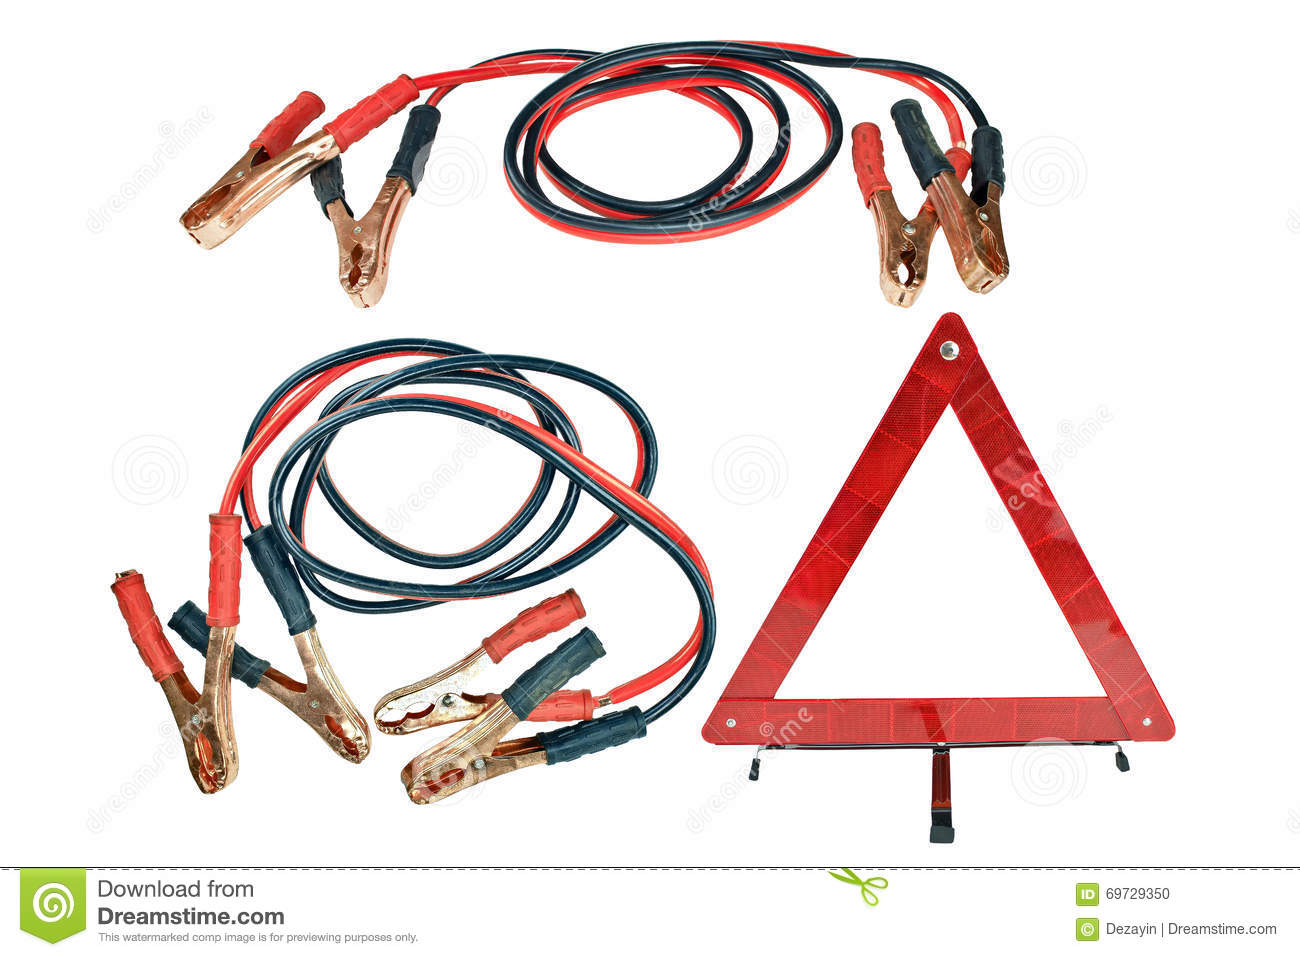 How hook up jumper cables